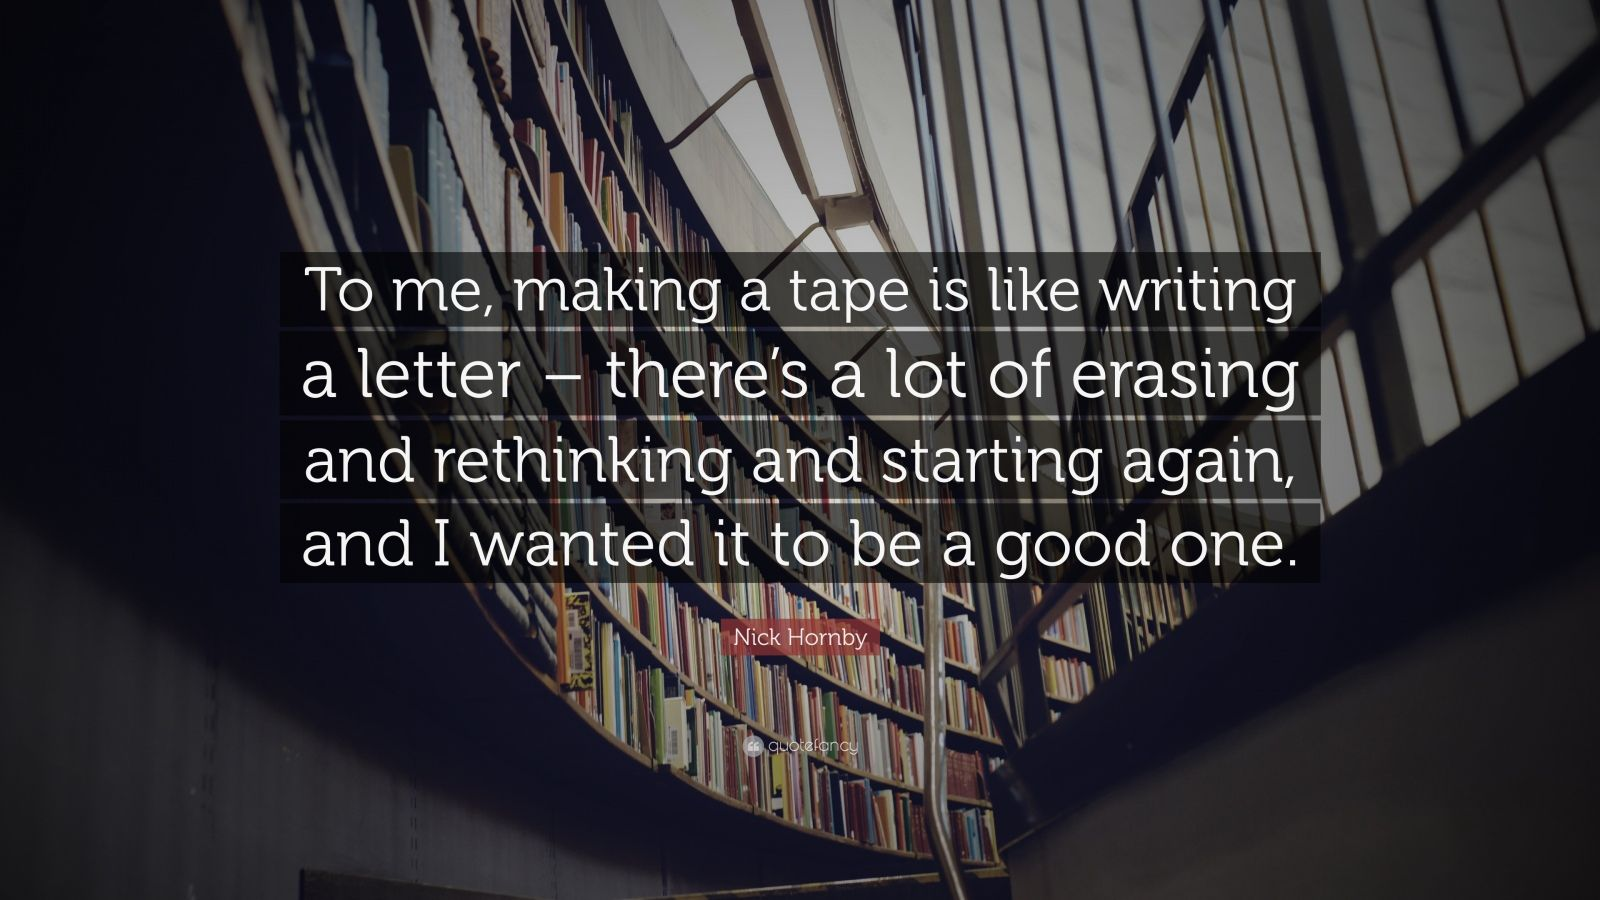 """Nick Hornby Quote: """"To me, making a tape is like writing a letter – there's a lot of erasing and rethinking and starting again, and I wanted it to be a good one."""""""